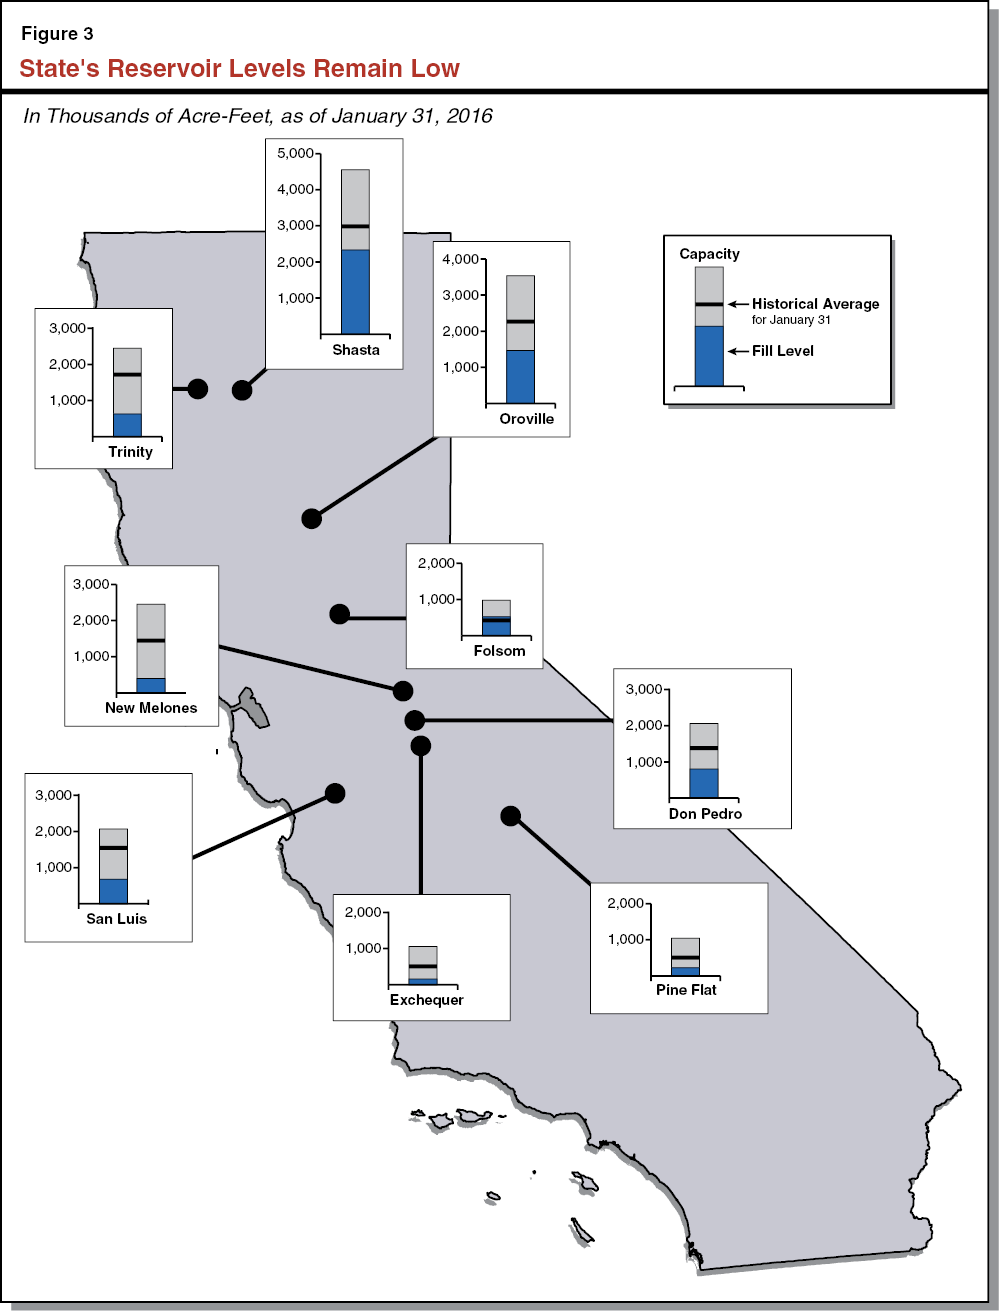 Figure 3 - State's Reservoir Levels Remain Low